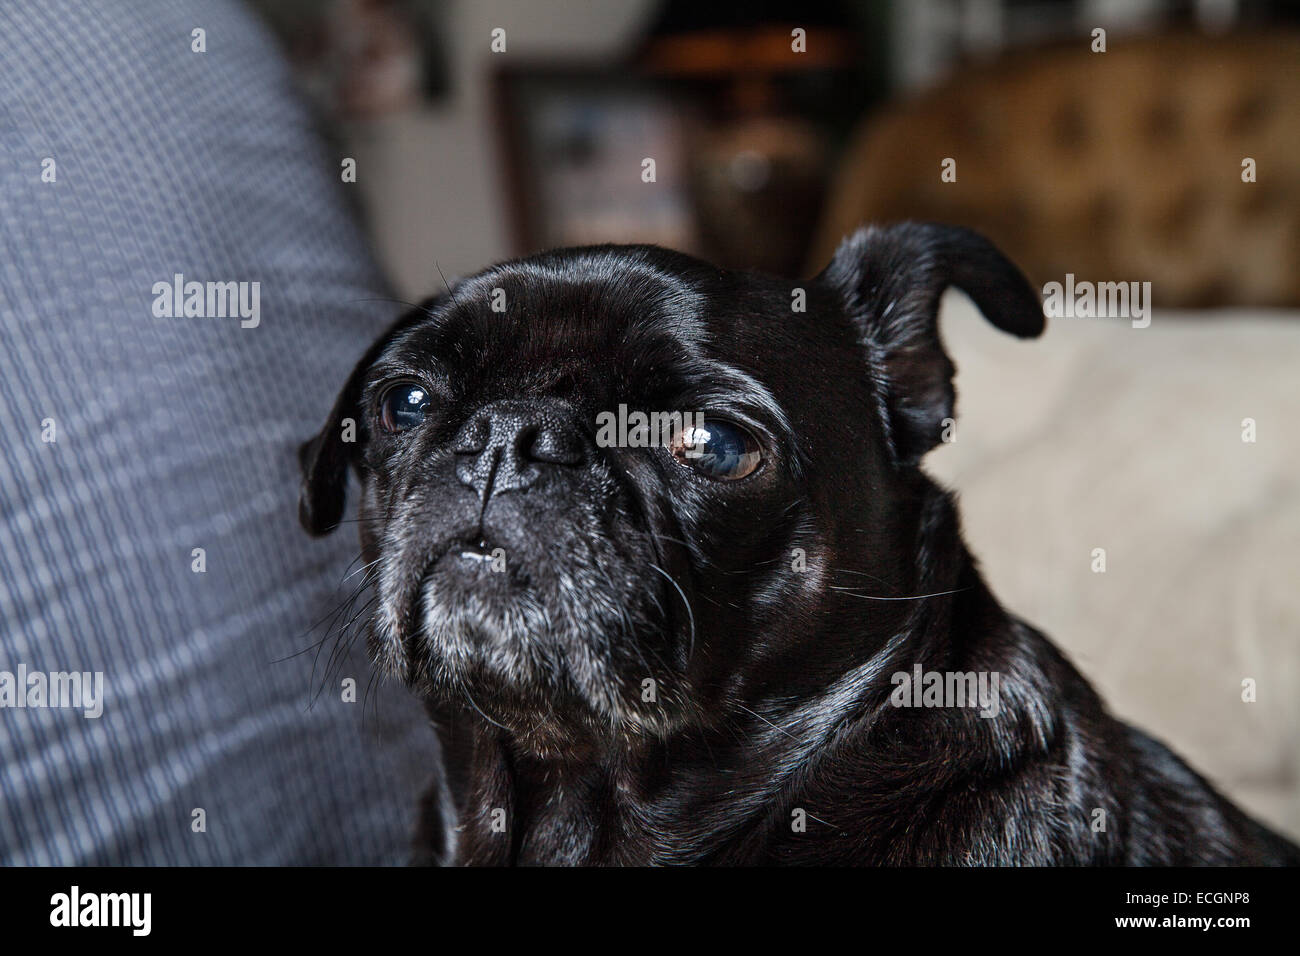 Pug on couch - Stock Image